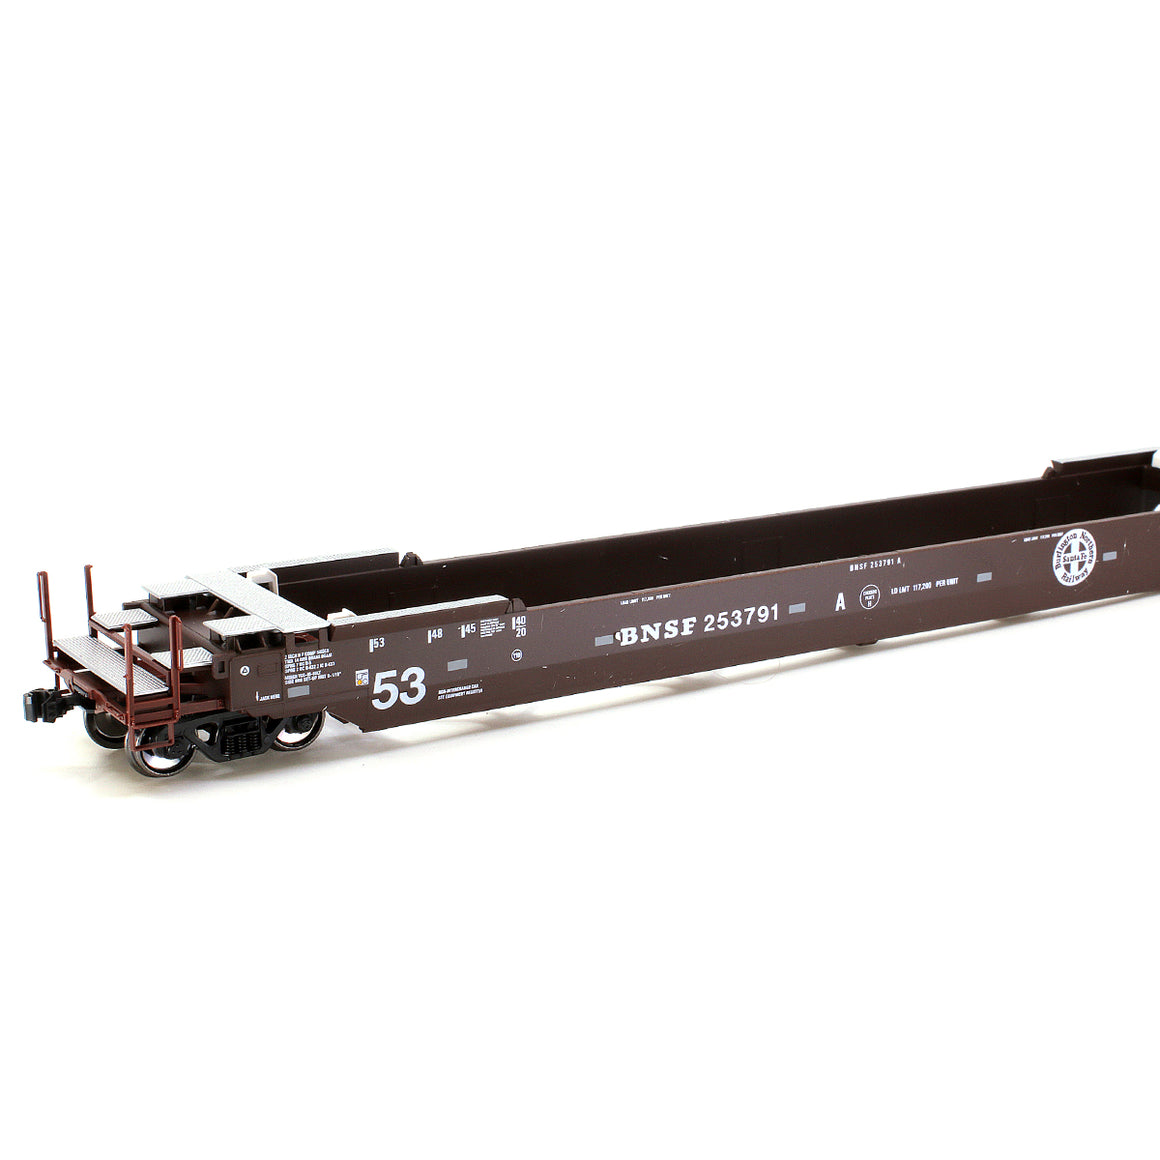 HO Scale: Gunderson Maxi-IV Articulated Well Cars - BNSF - Old Logo